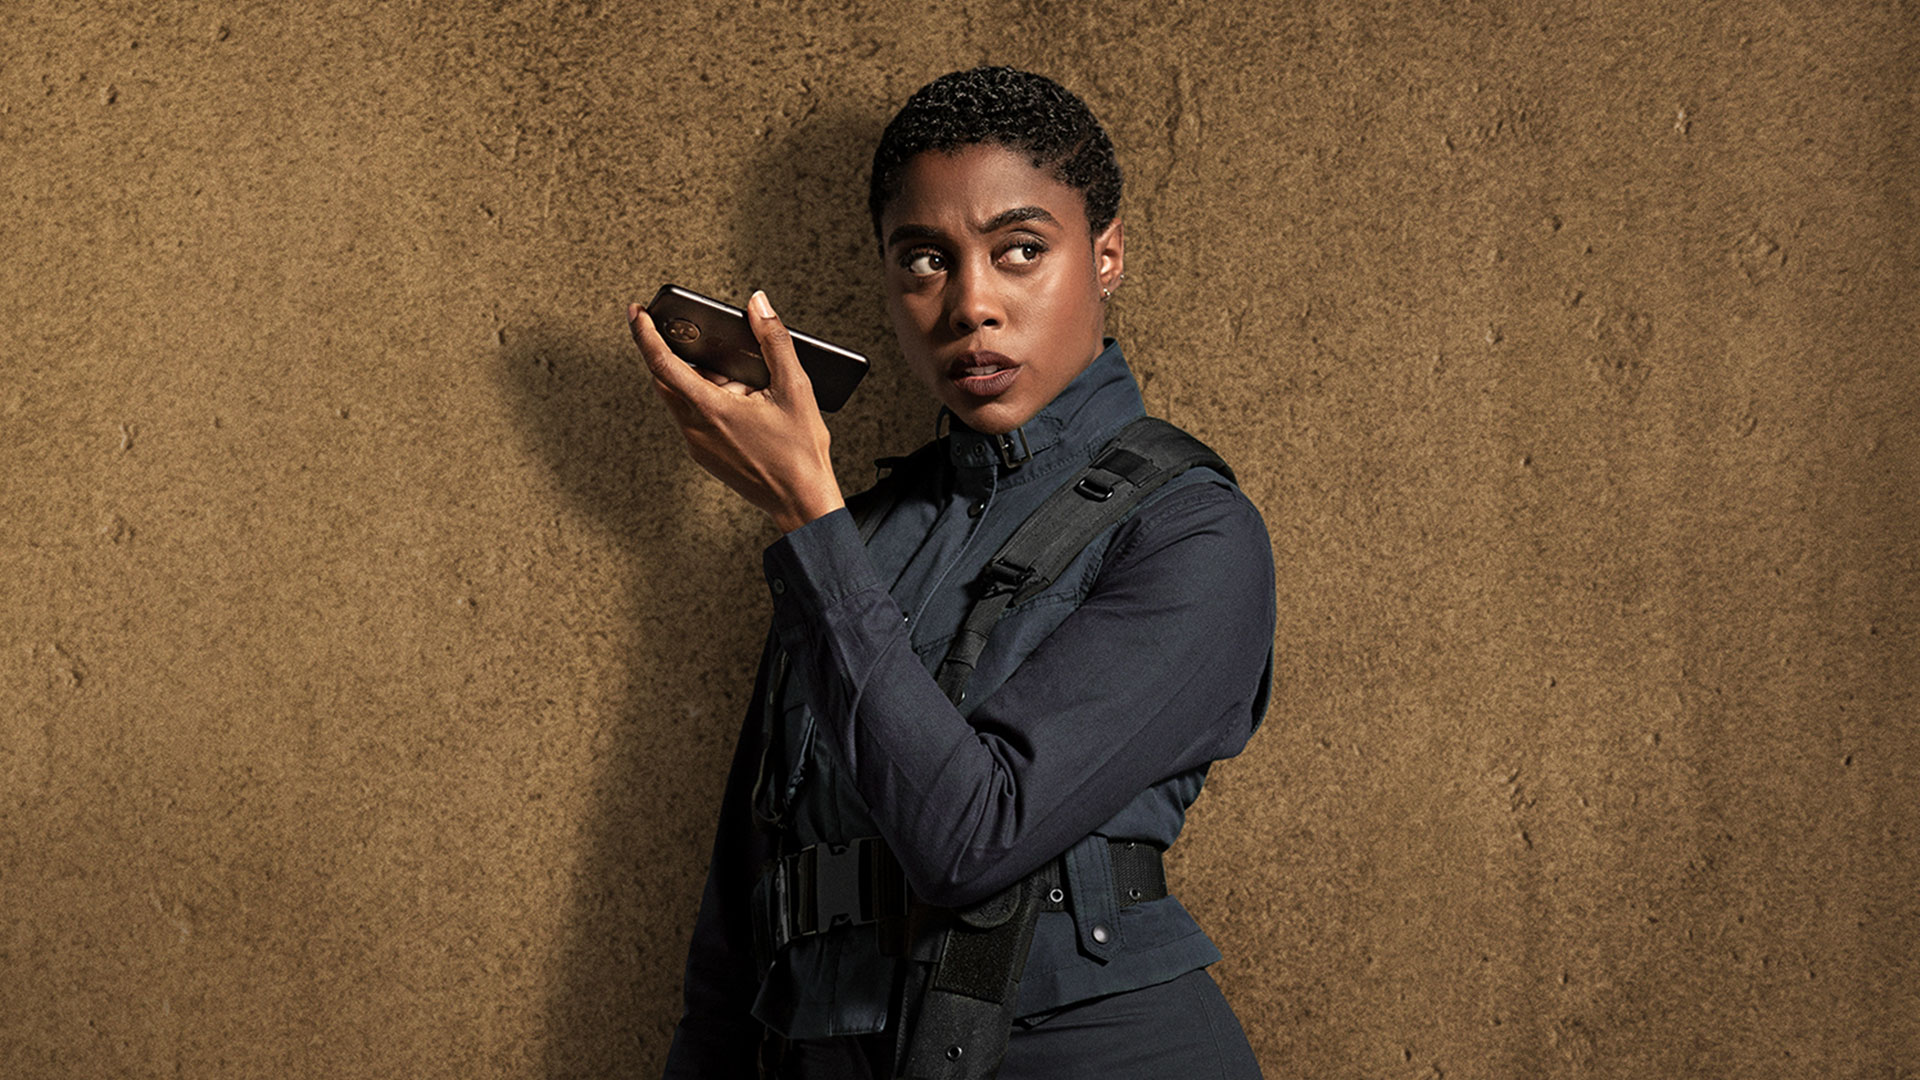 No Time To Die-Star Lashana Lynch with Nokia-5G-phone as Agent-Nomi